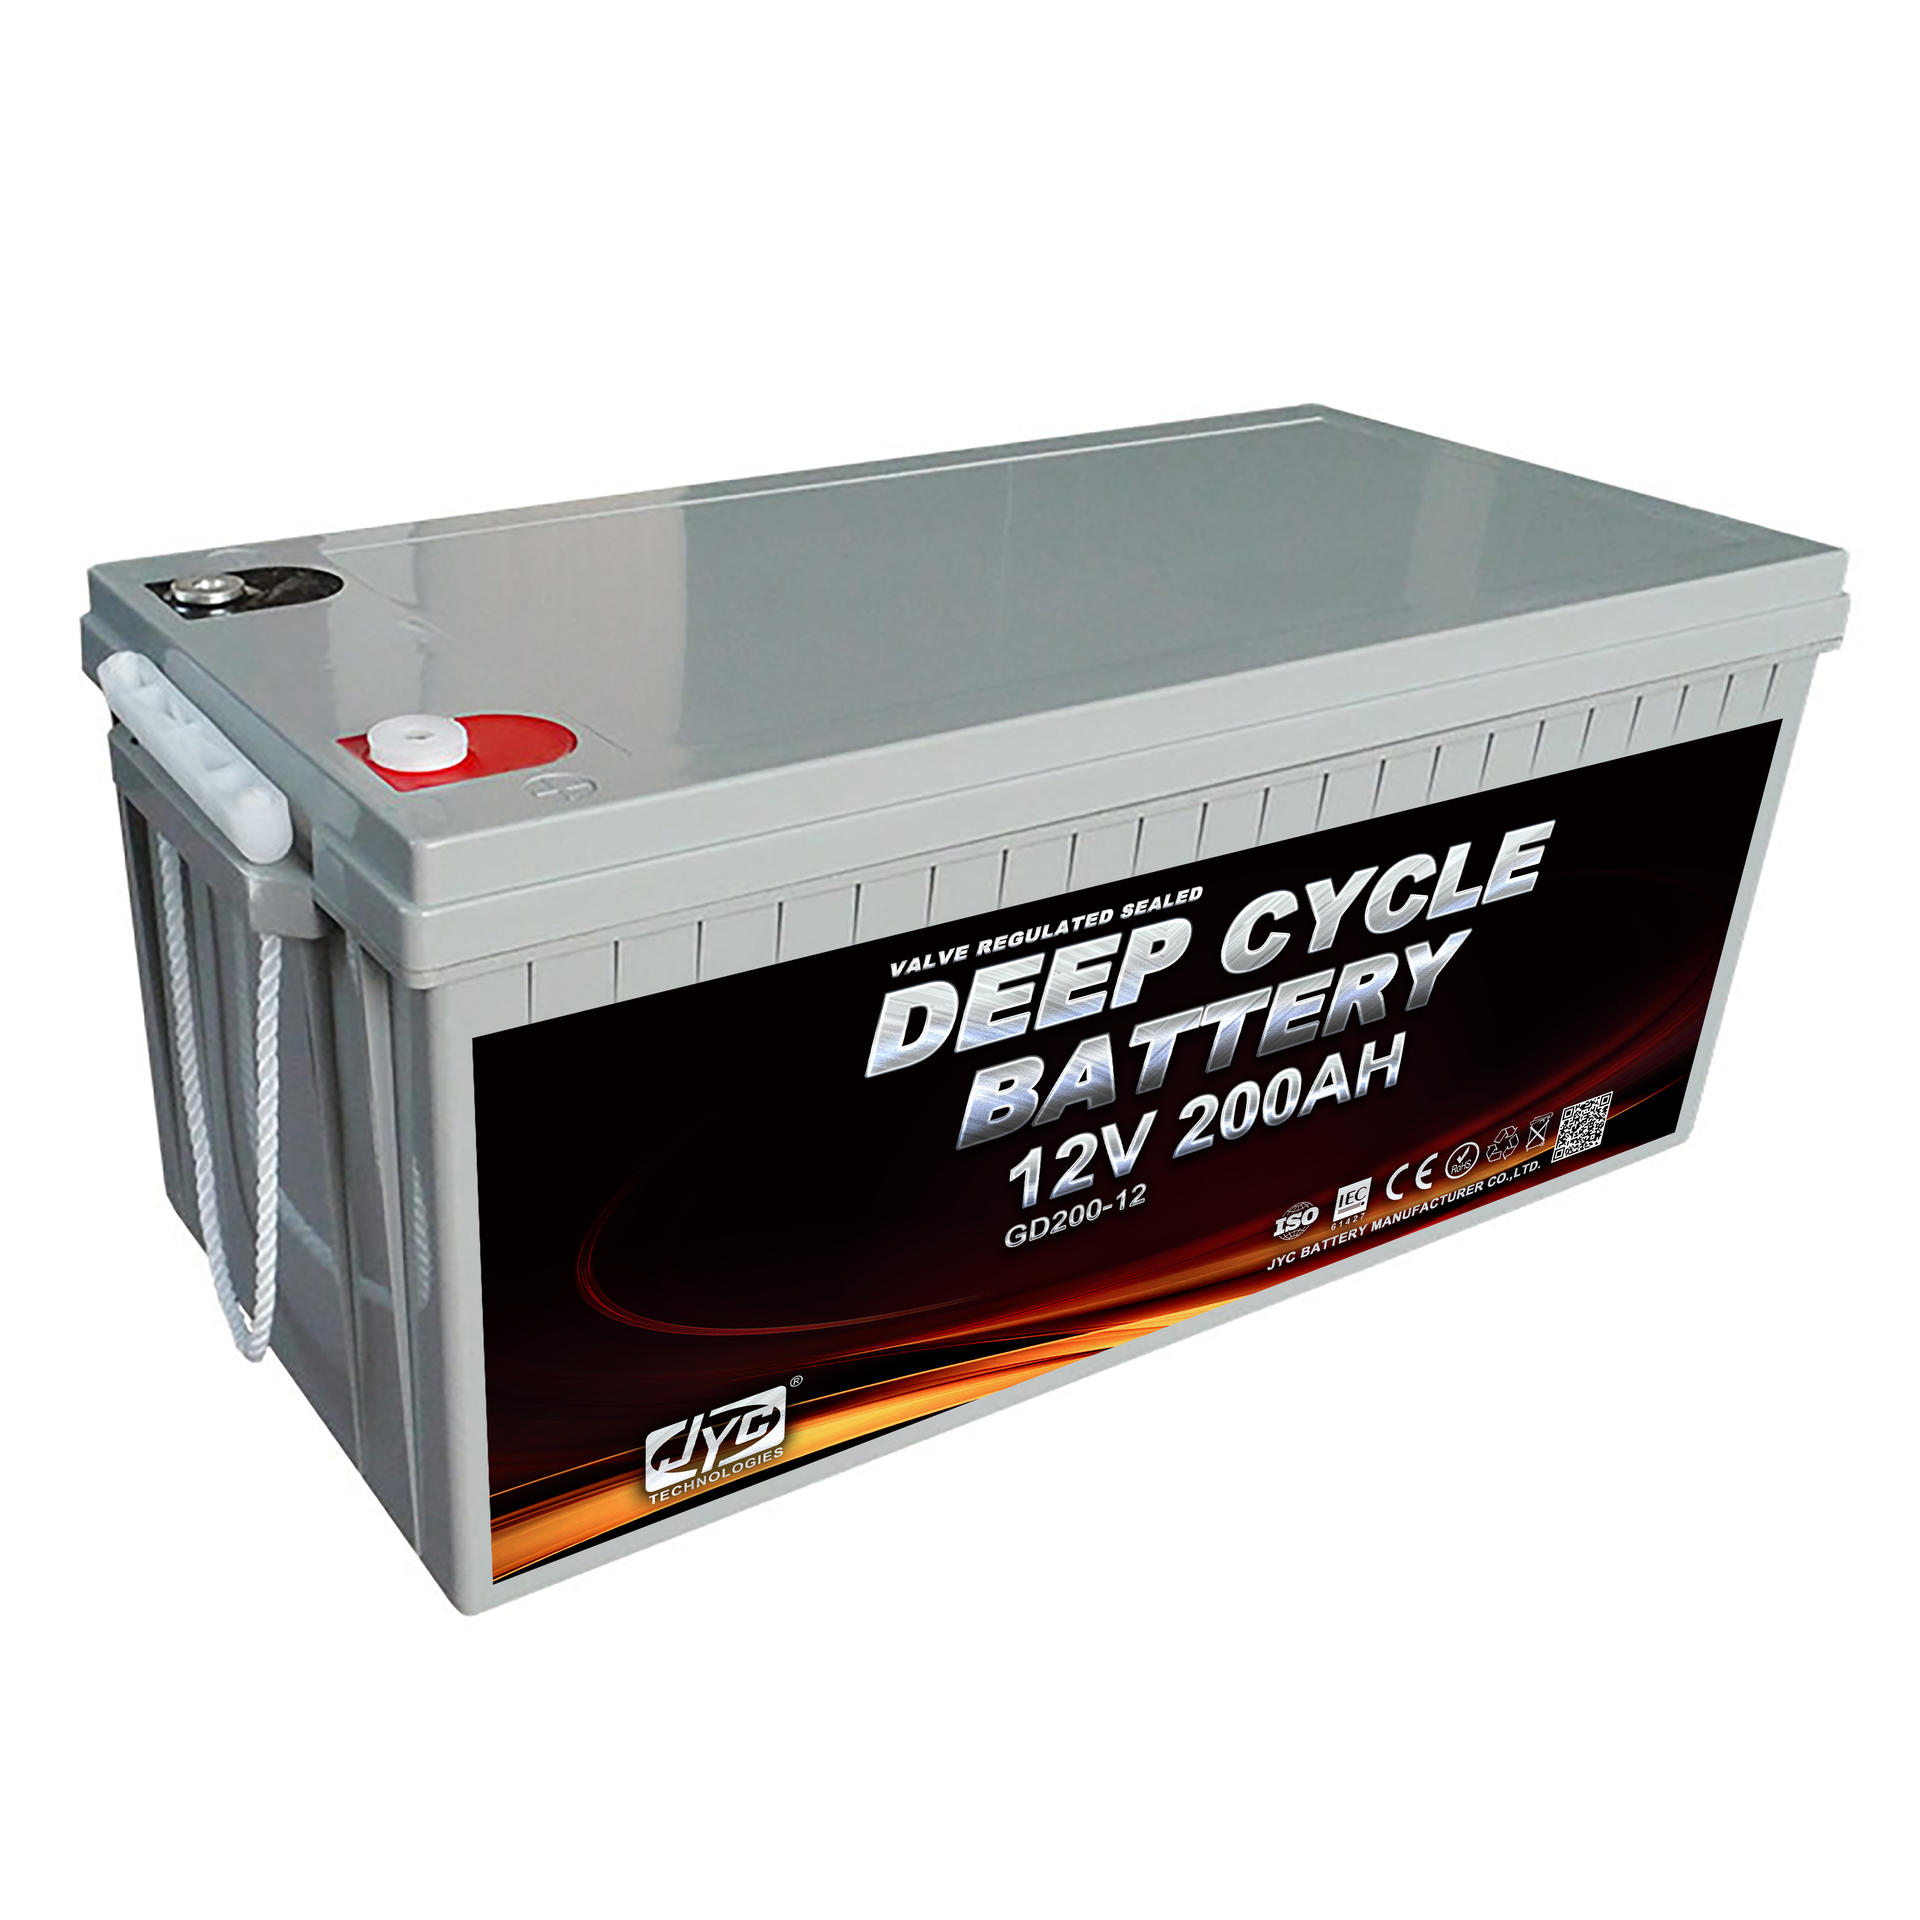 JYC Battery Manufacturers 12V 200AH 1S10P Formed Deep Cycle Battery 12V 2000Ah for Solar or Home Storage